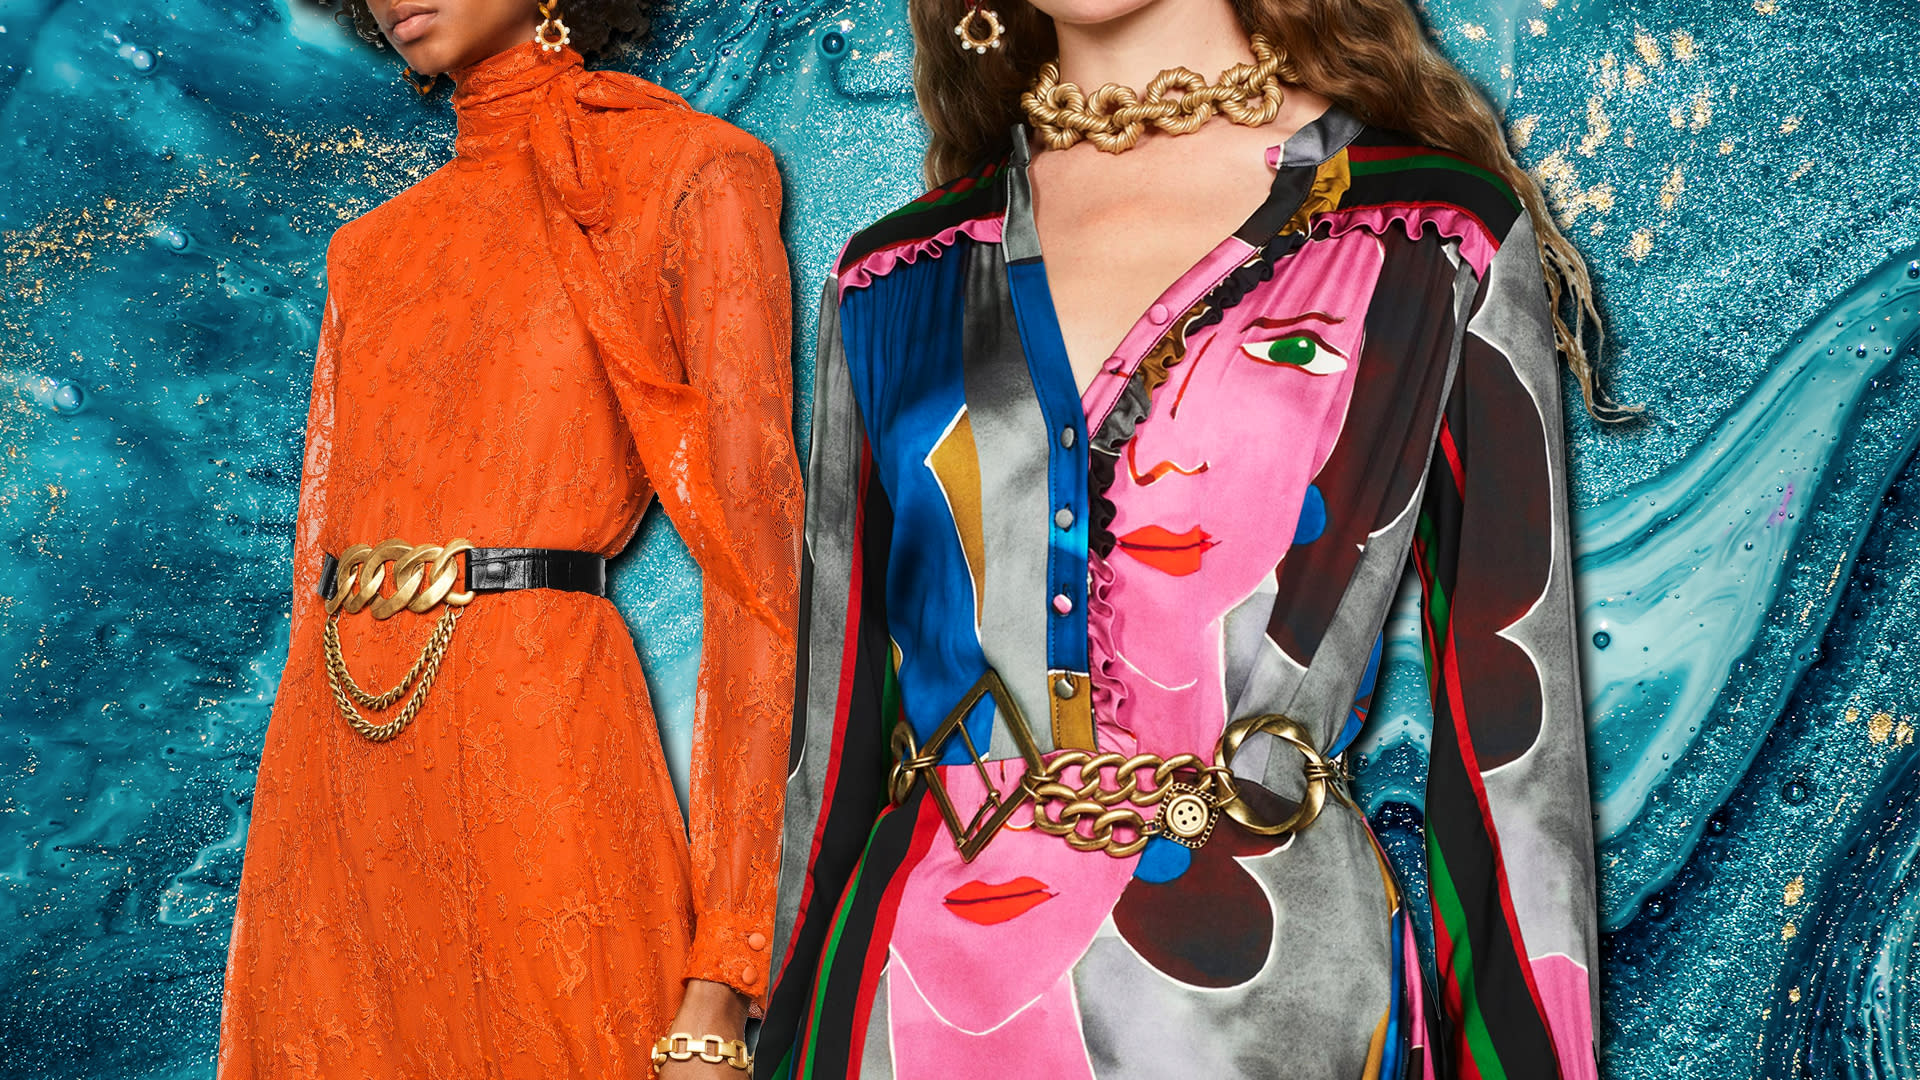 Zara S New Collection Looks Like Gucci And I M Not At All Mad